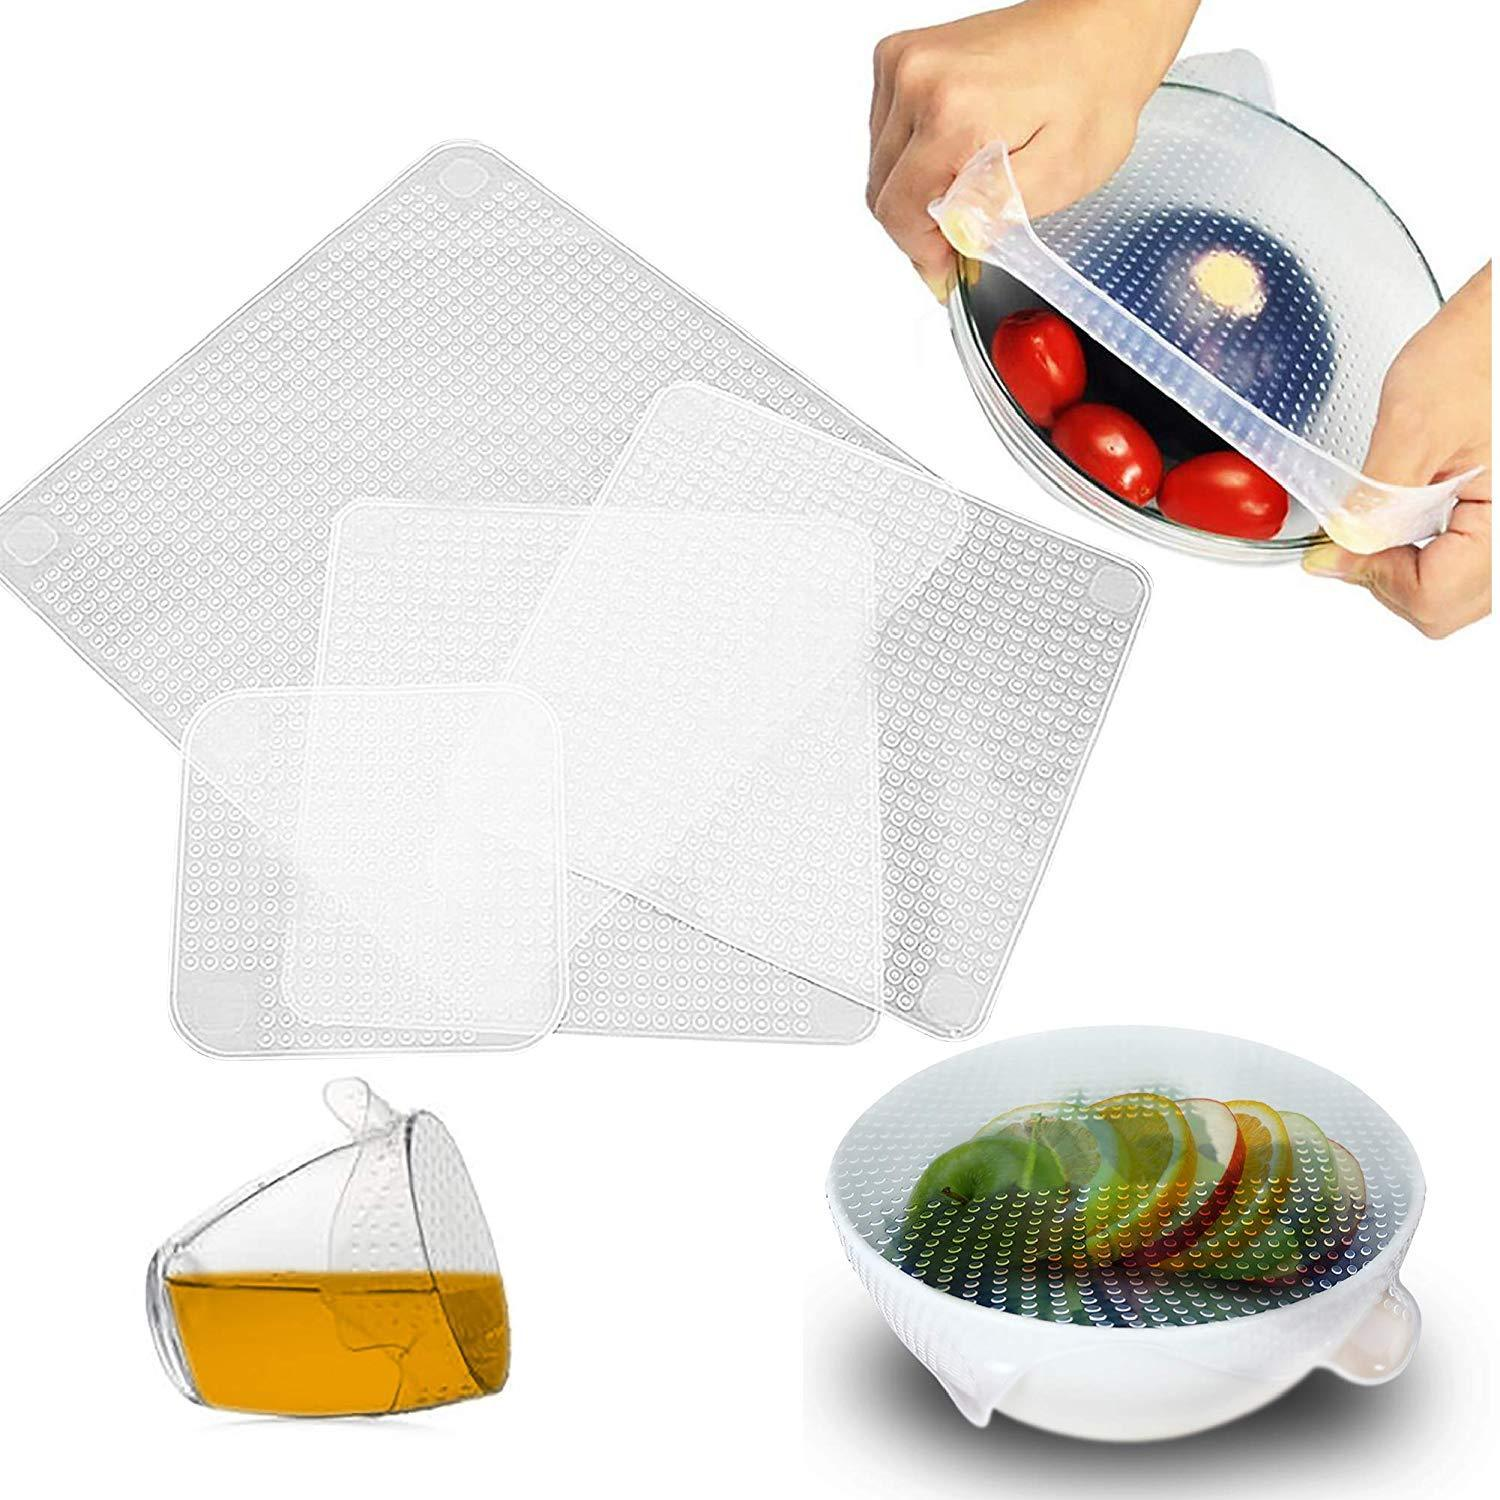 Buy 3 Get 1 Free- Reusable Silicone Food Wrap (Set of 4)